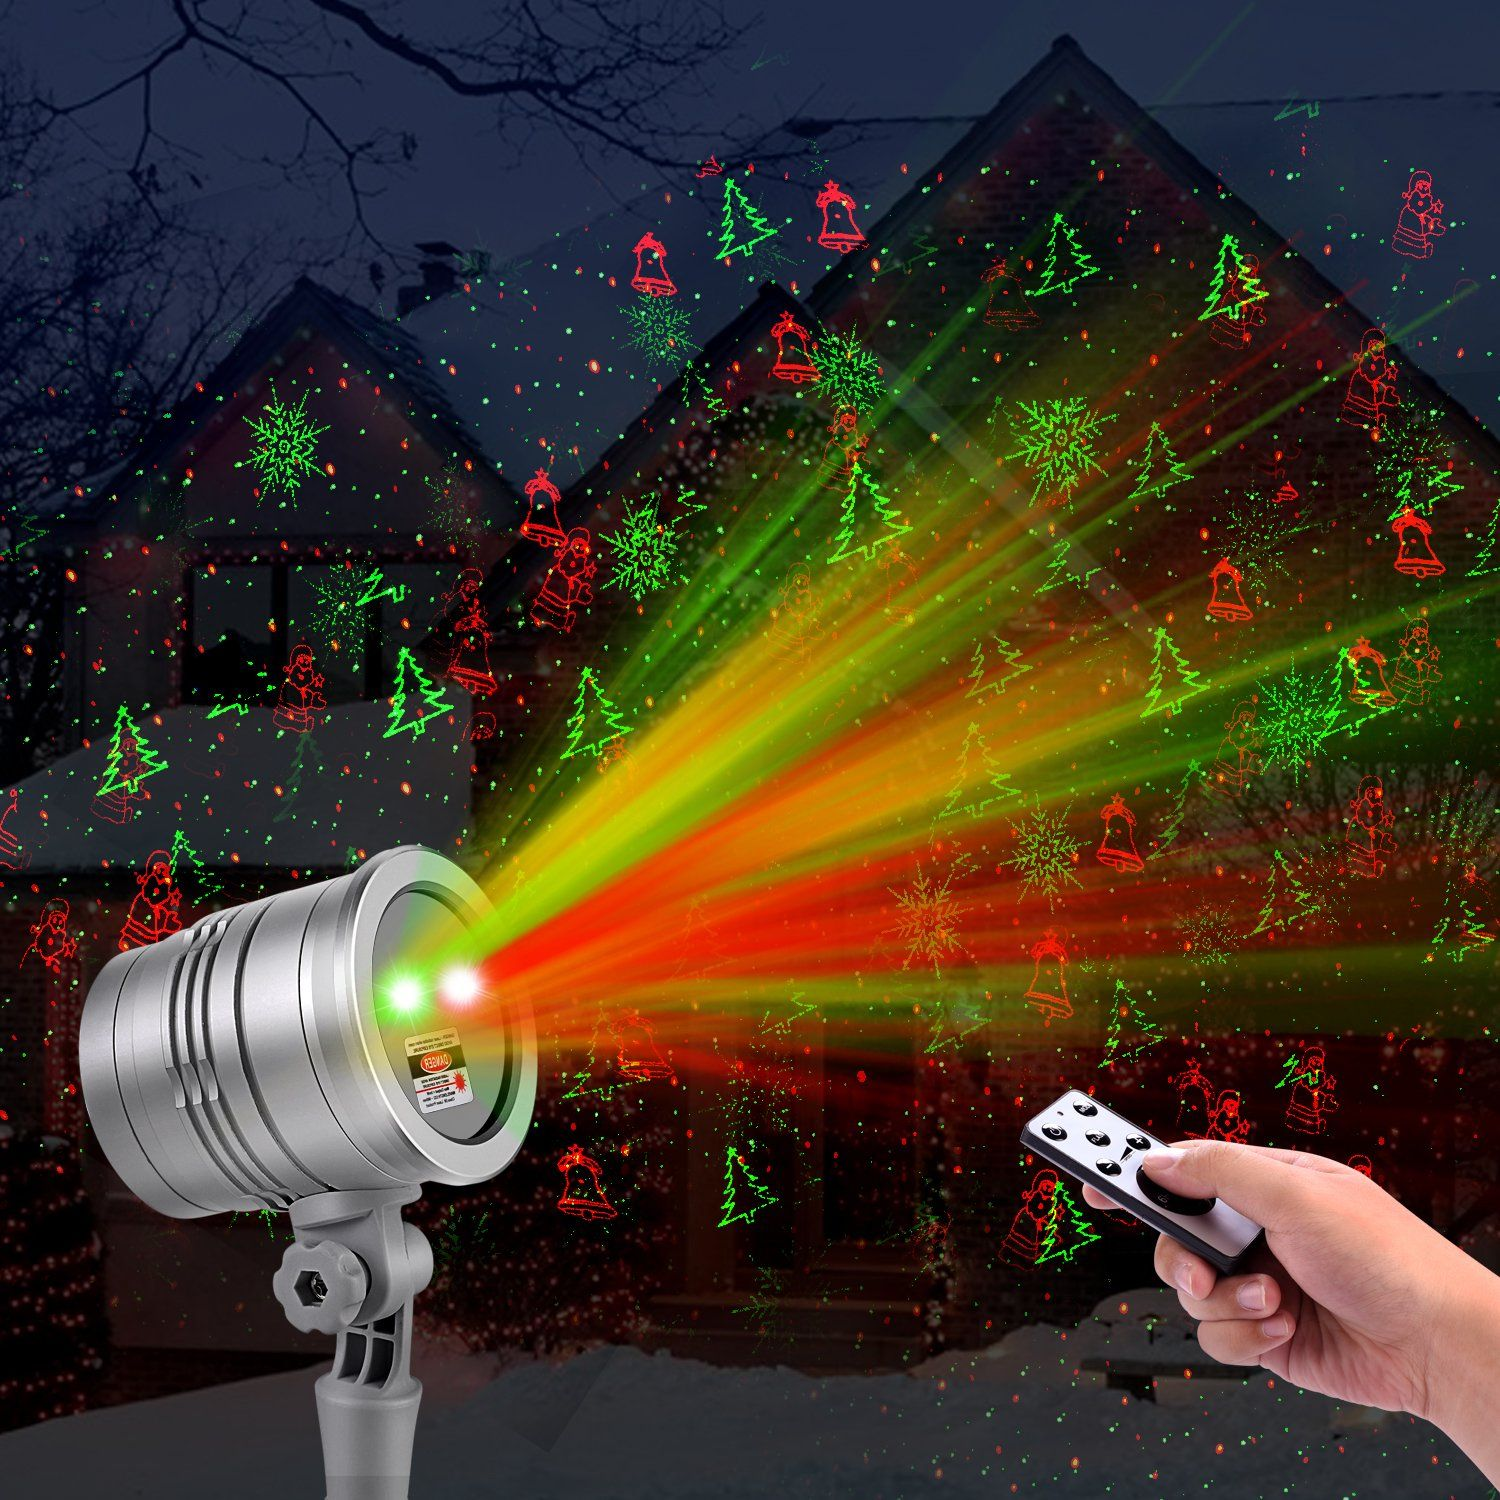 Christmas Laser Lights Outdoor Projector By Cars Snowflake Jingling Bell Xmas